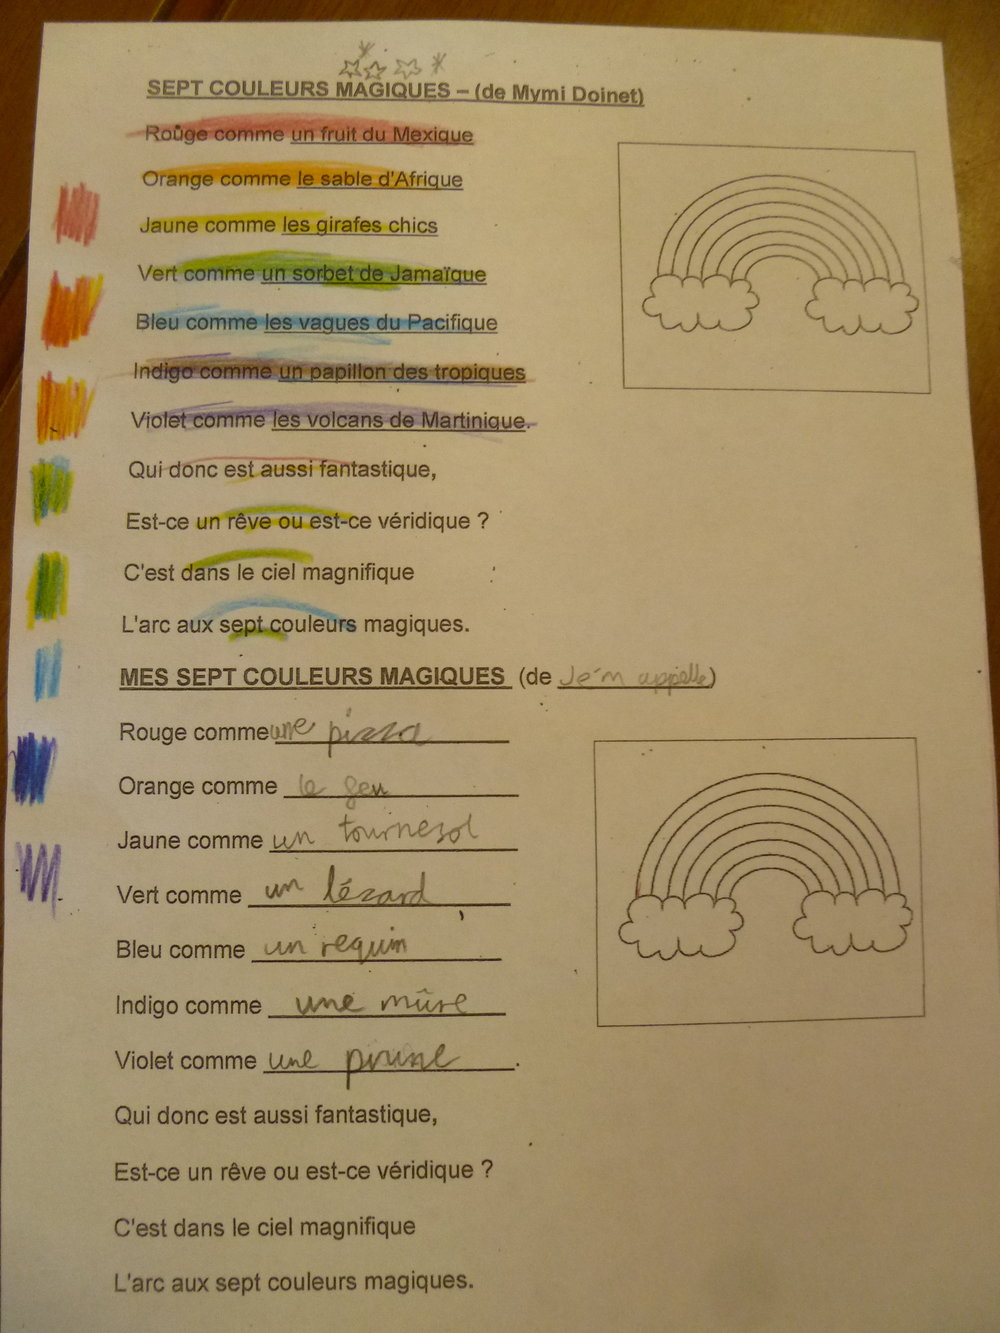 Great way to use a real French poem and create our own imaginative and creative versions.